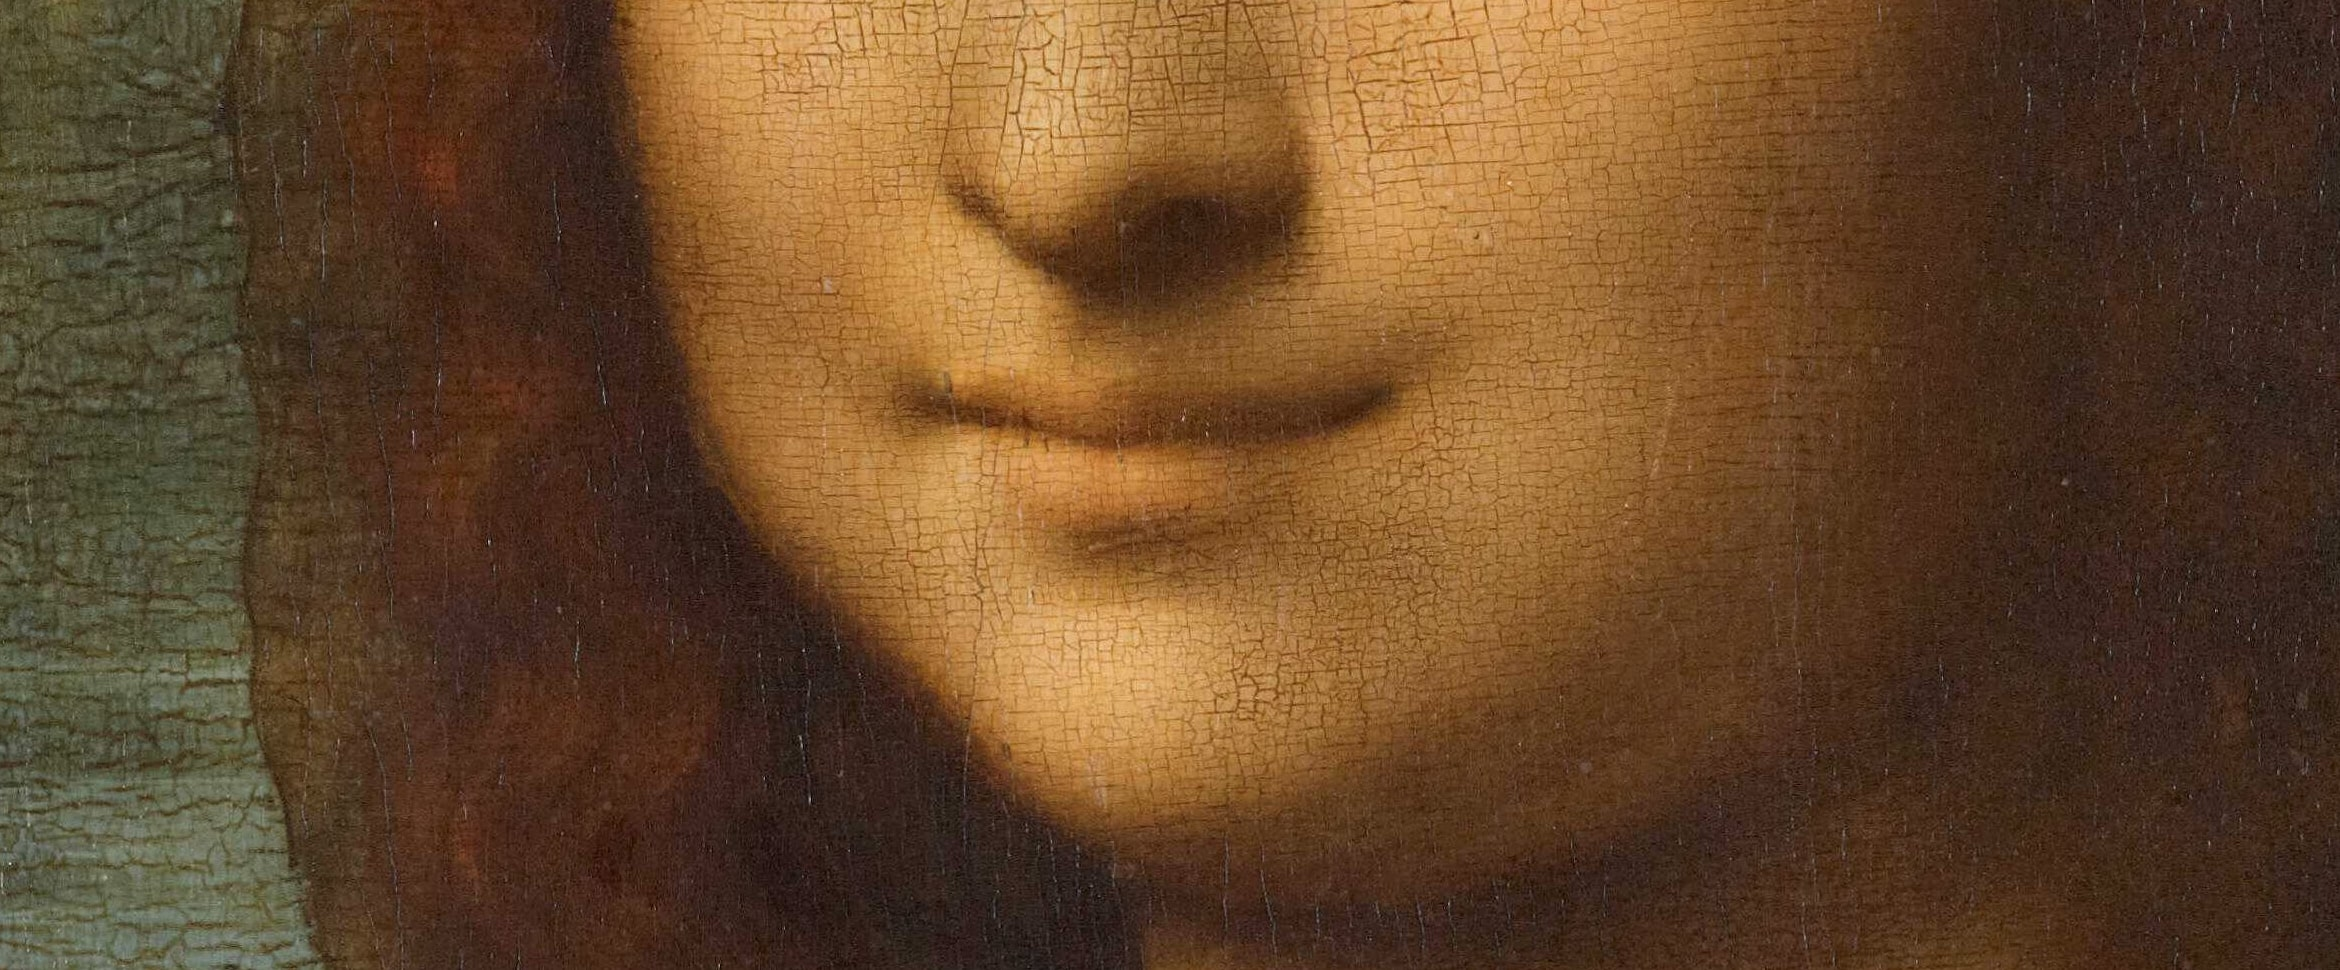 """Close up of the famous """"Mona Lisa smile"""""""